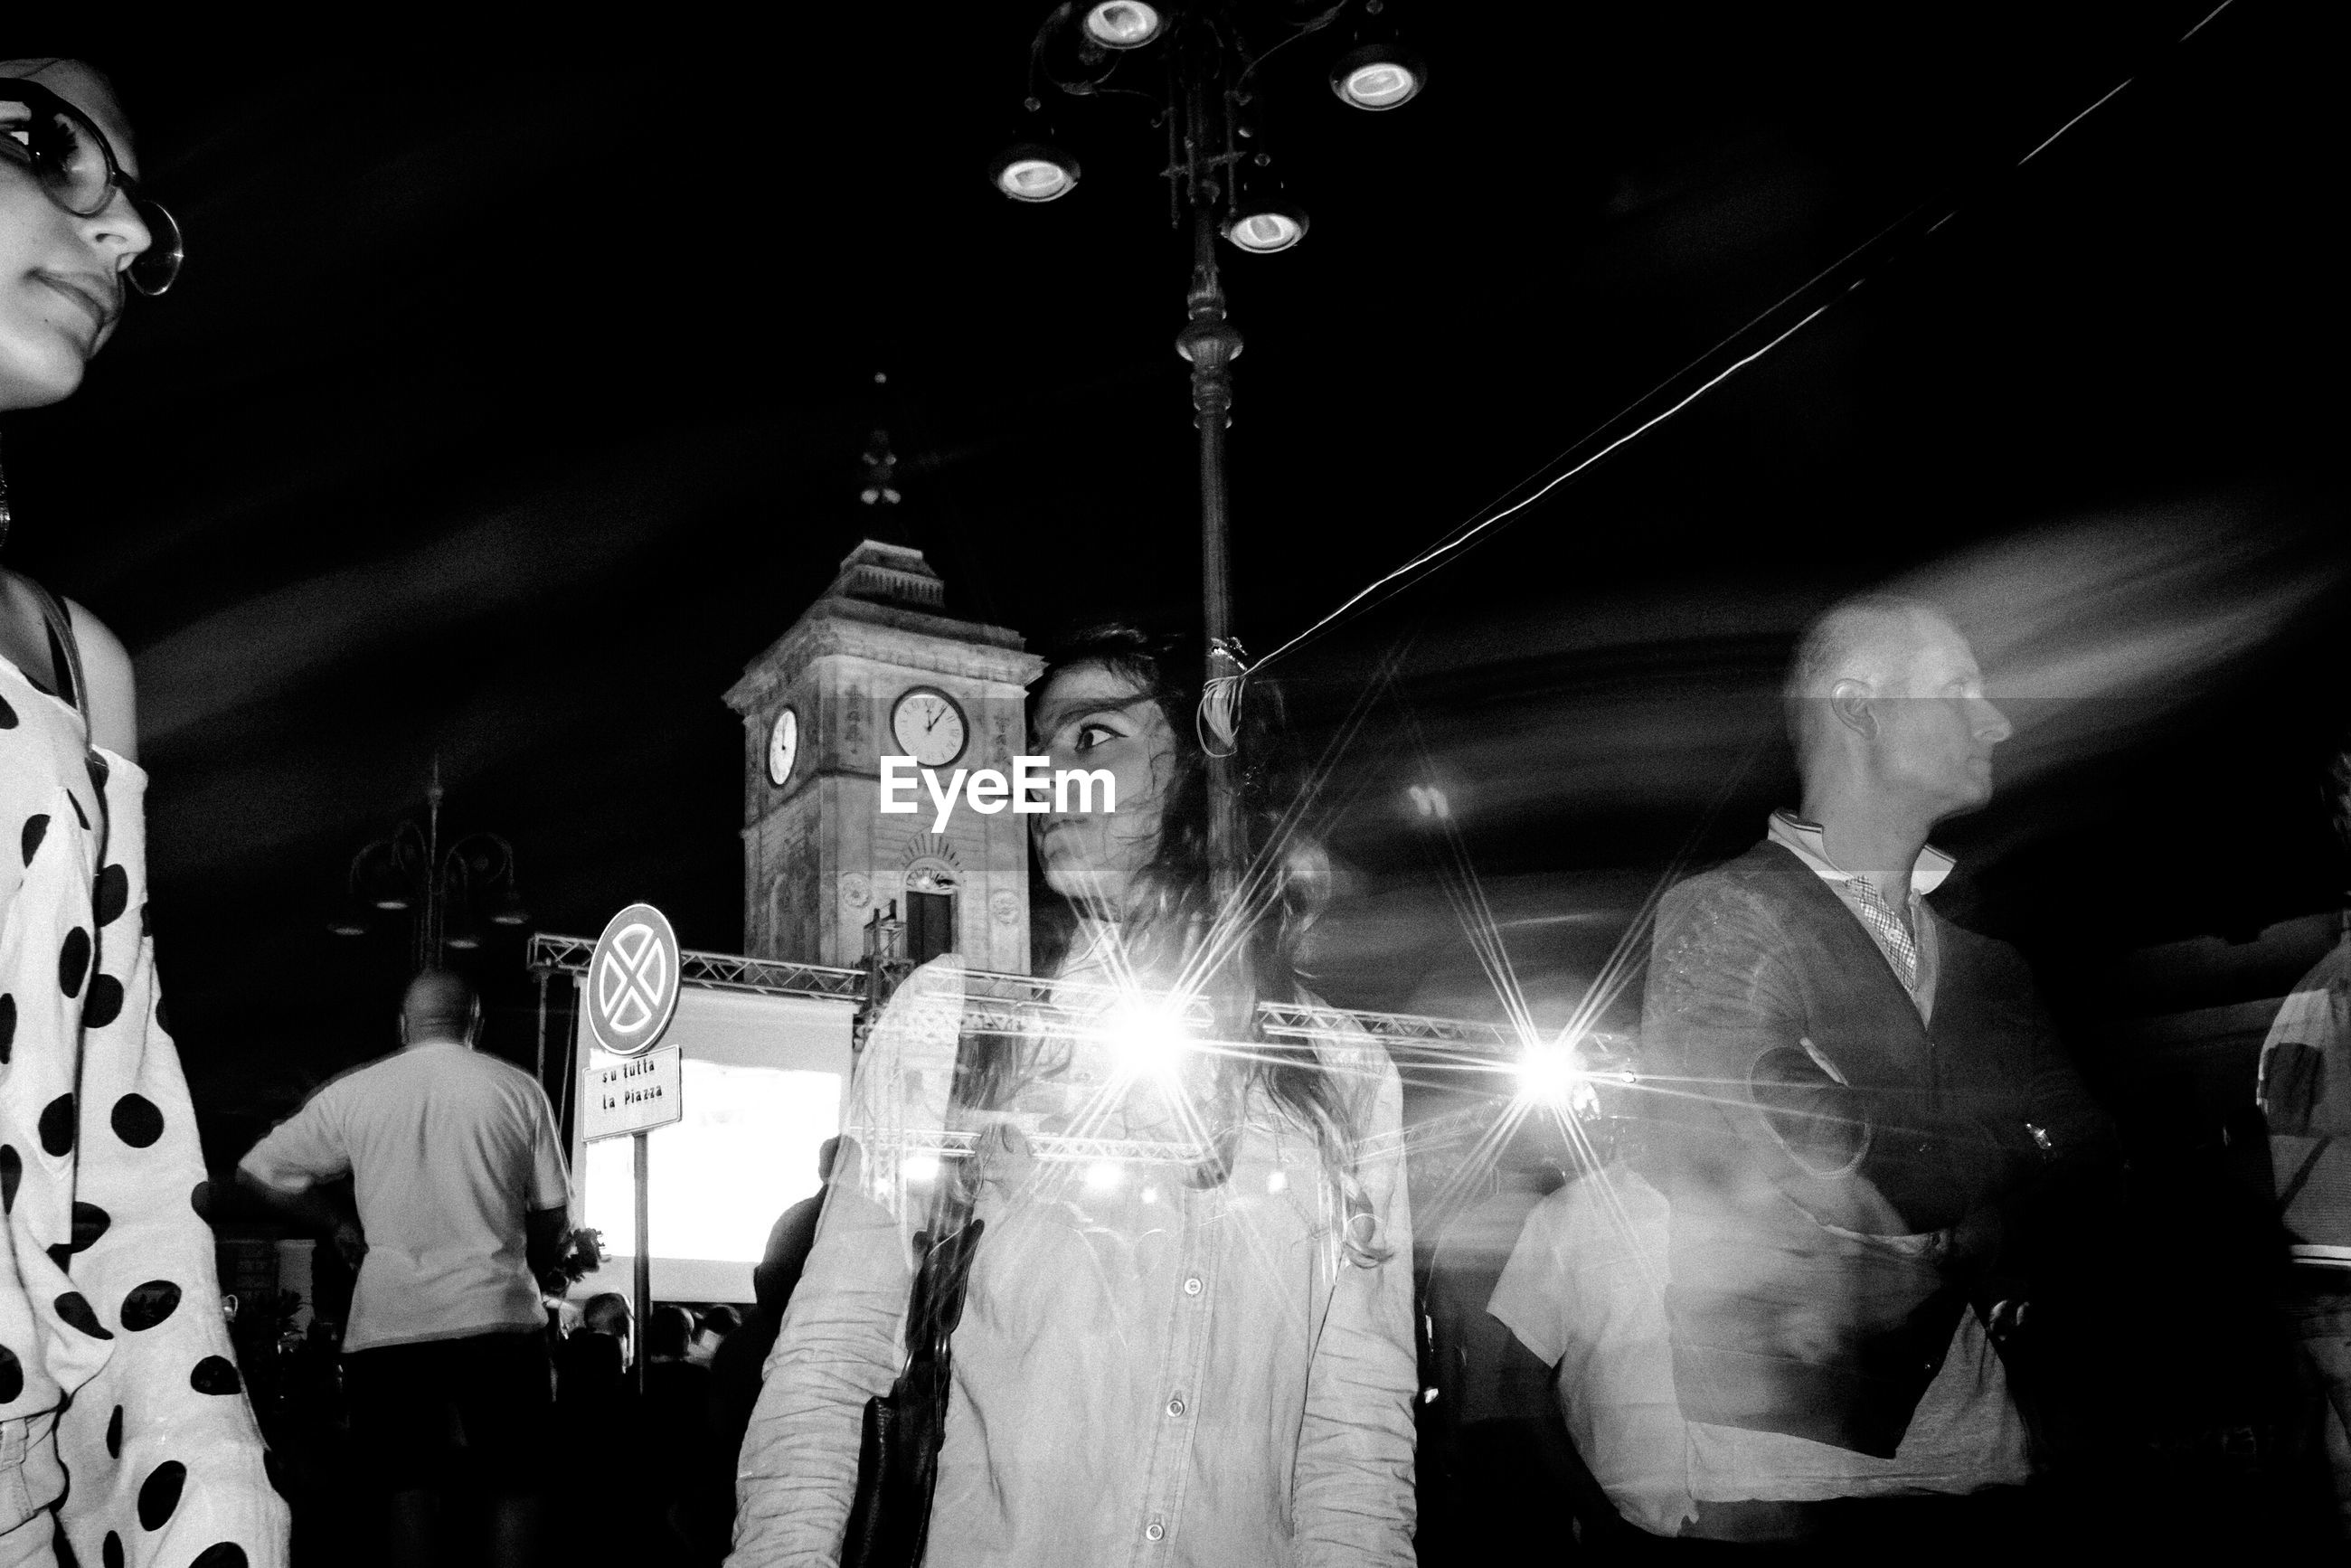 PEOPLE AT ILLUMINATED CATHEDRAL